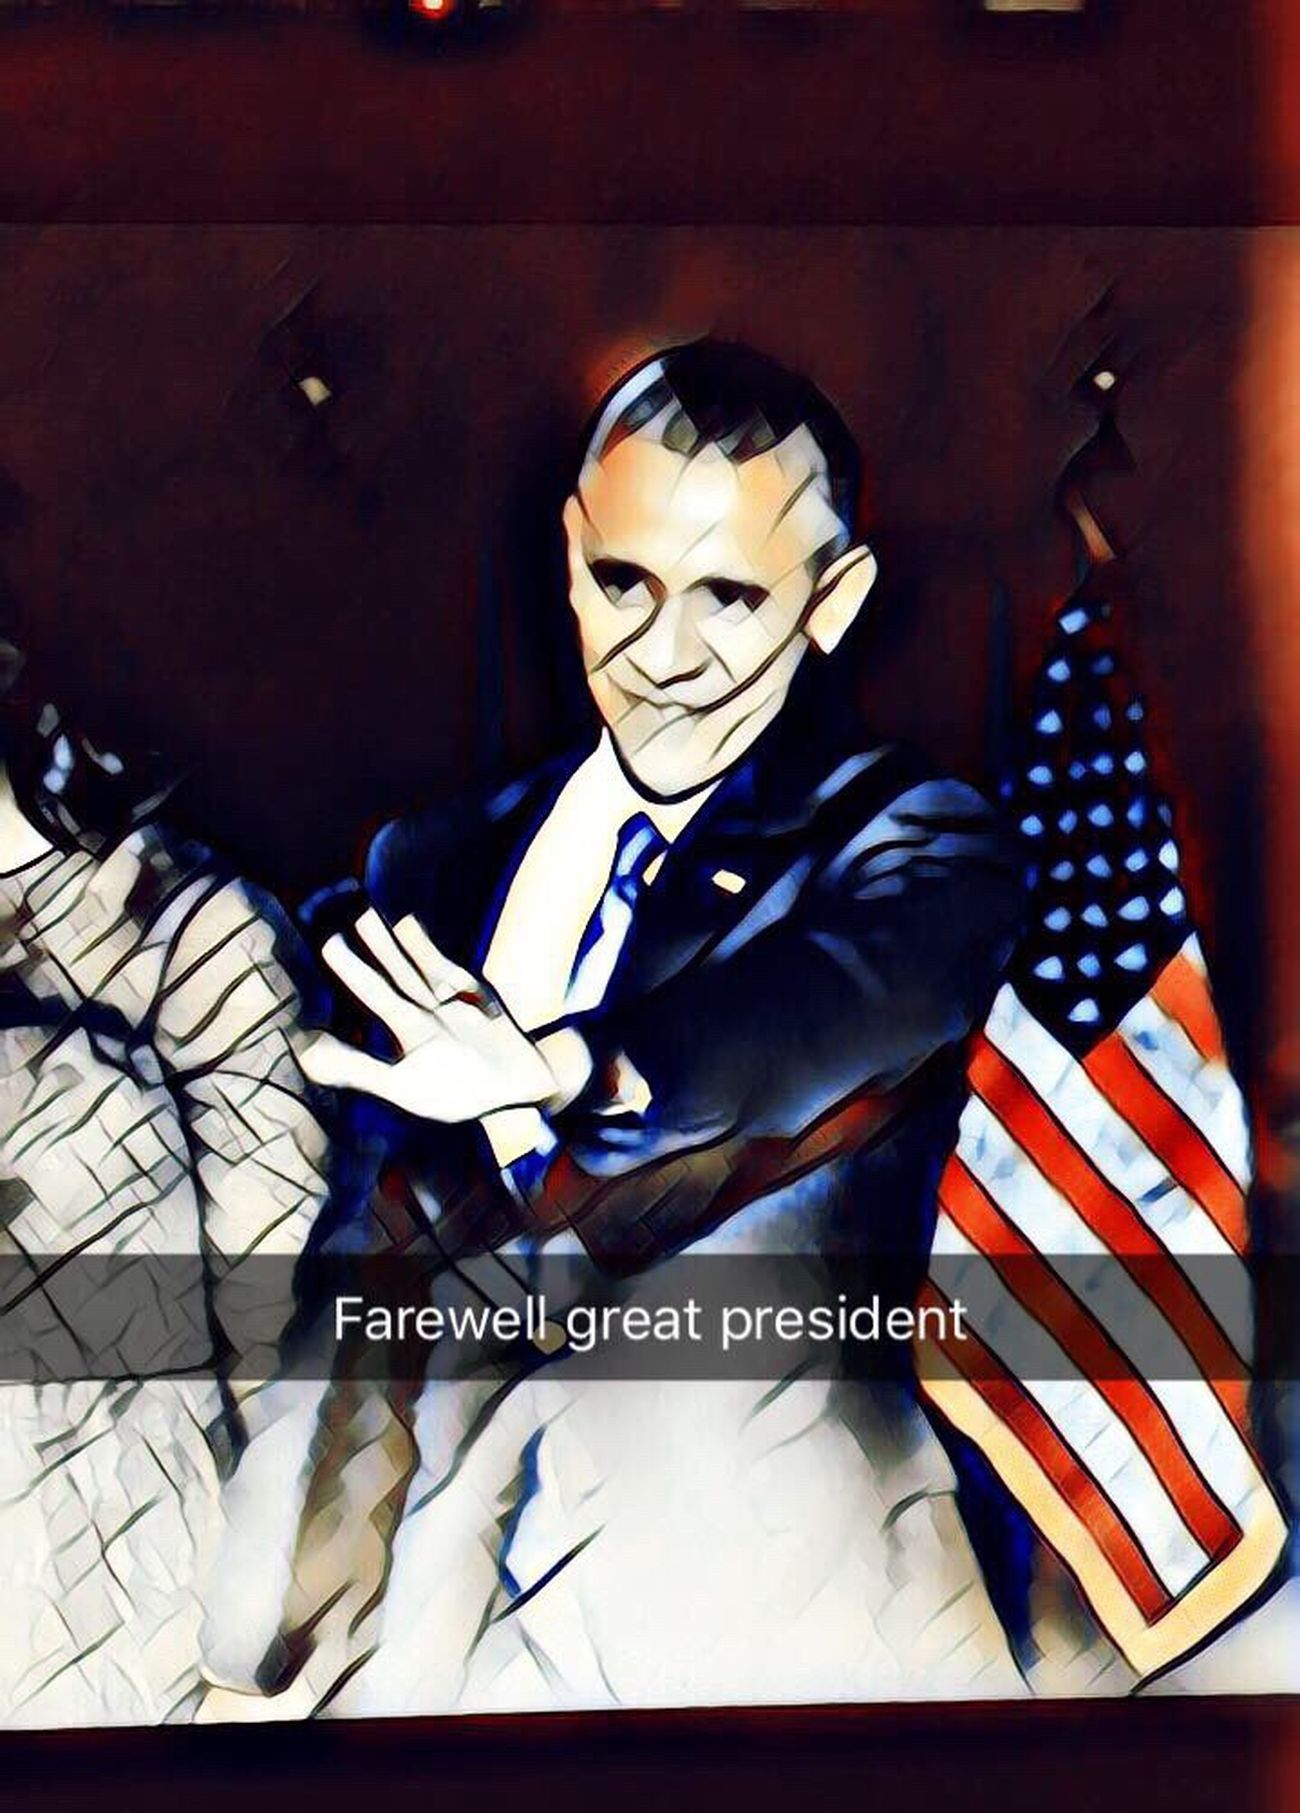 Loved this President of the USA Obama President Farewell Arts ArtWork Bye Bye One Person Power HERO